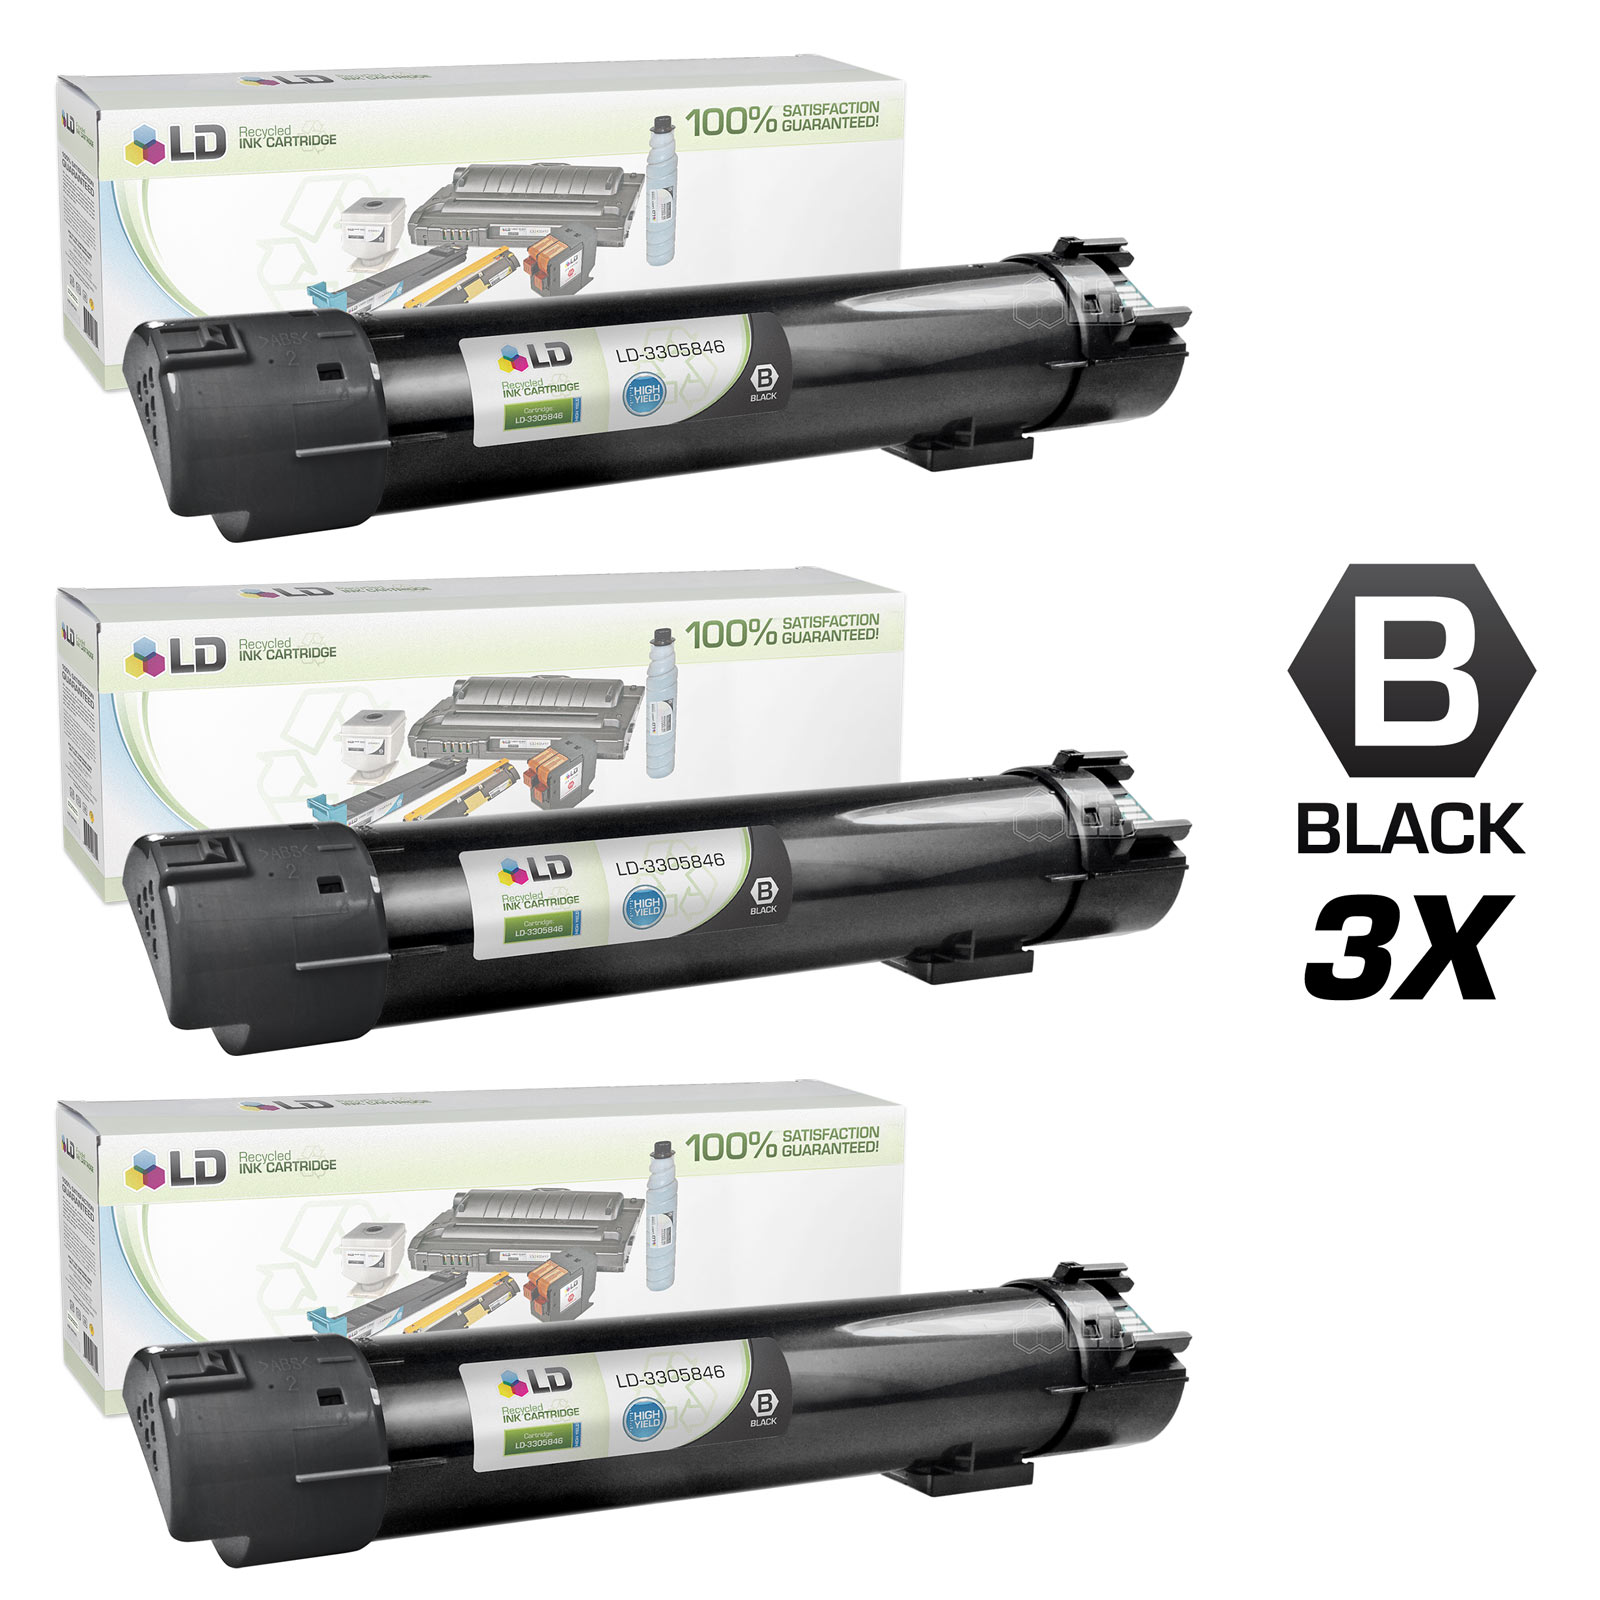 LD Remanufactured Dell 5130 HY Toner Cartridges: 330-5846 BLK, 330-5850 C, 330-5843 M, 330-5852 Y